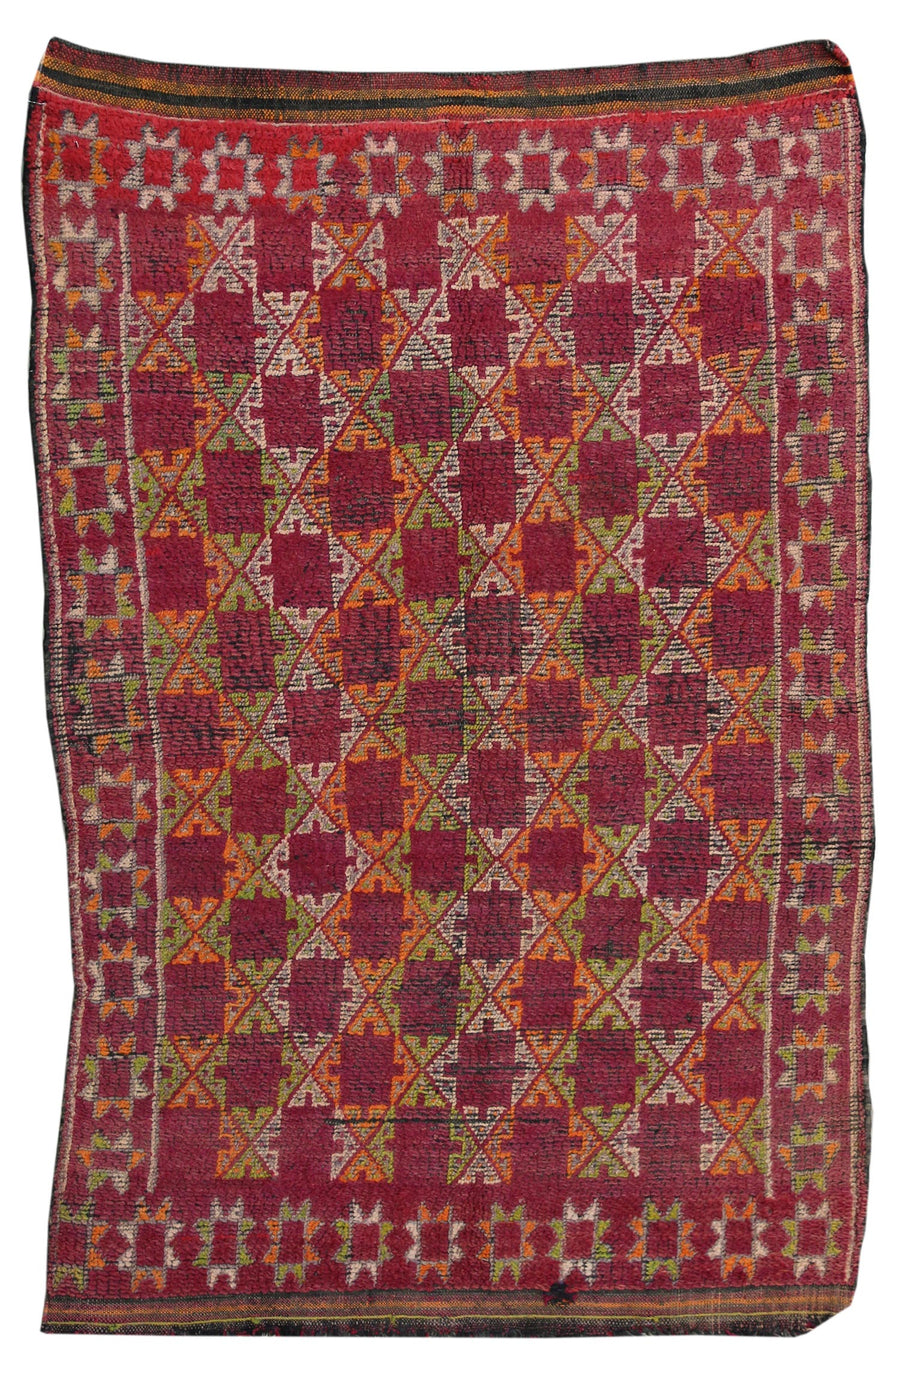 MOROCCAN HANDKNOTTED RUG, 61914